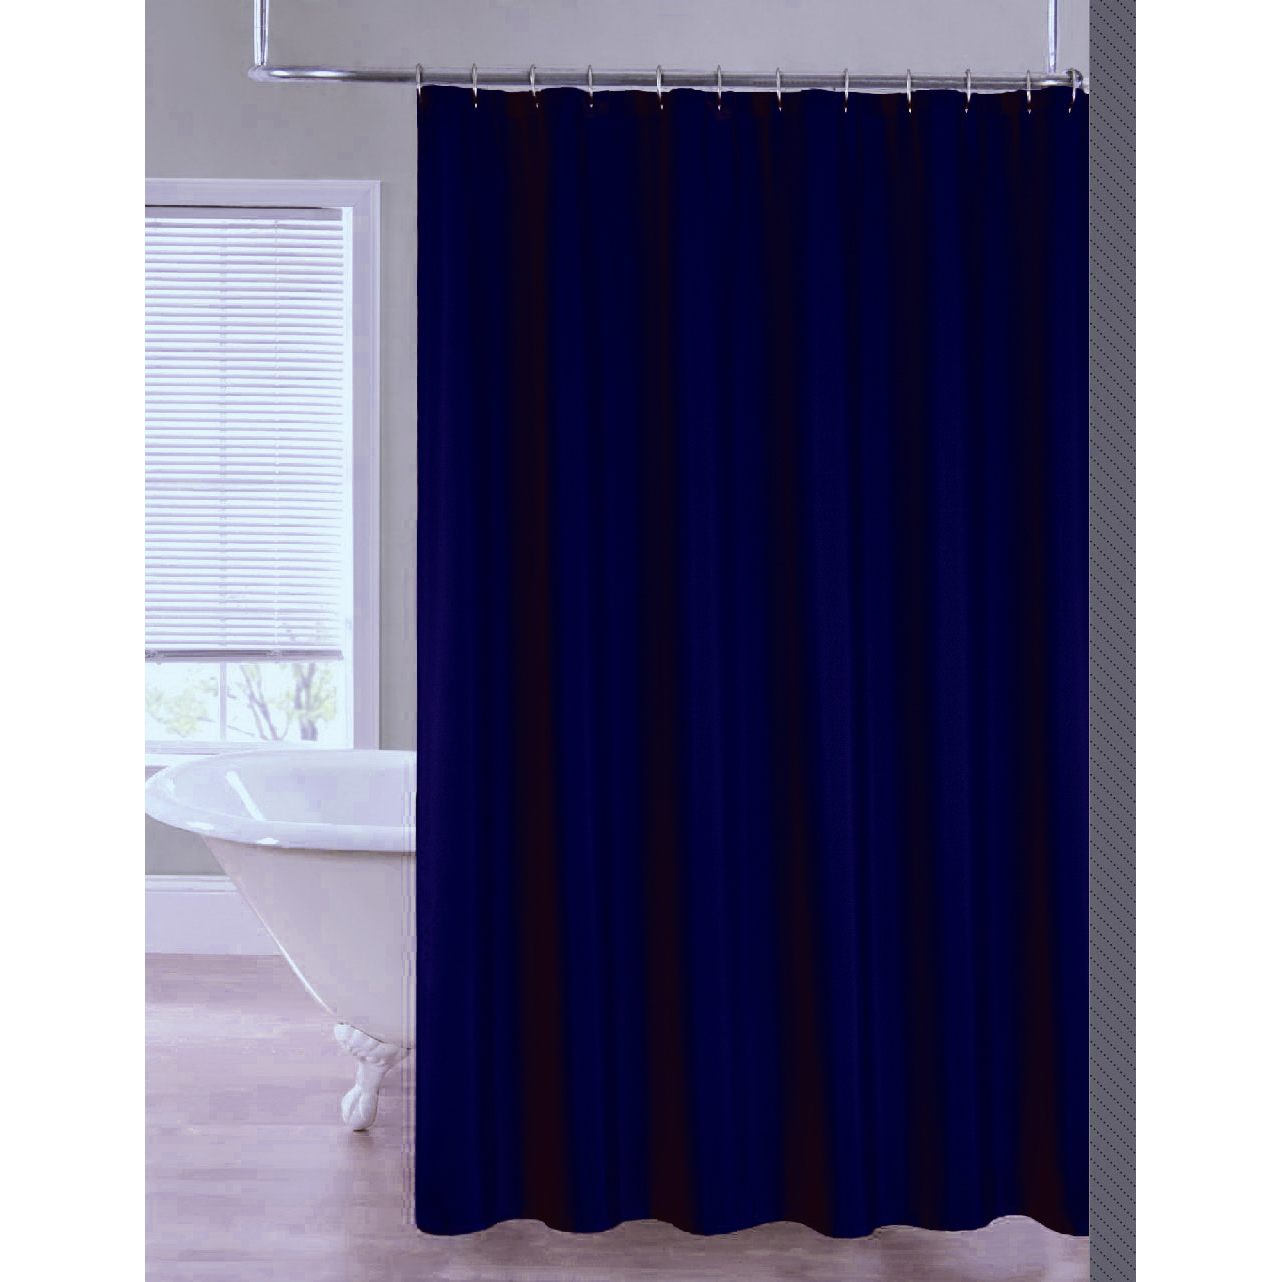 2 In 1 Water Repellant 70 X 72 Polyester Fabric Shower Curtain Liner 11 Color